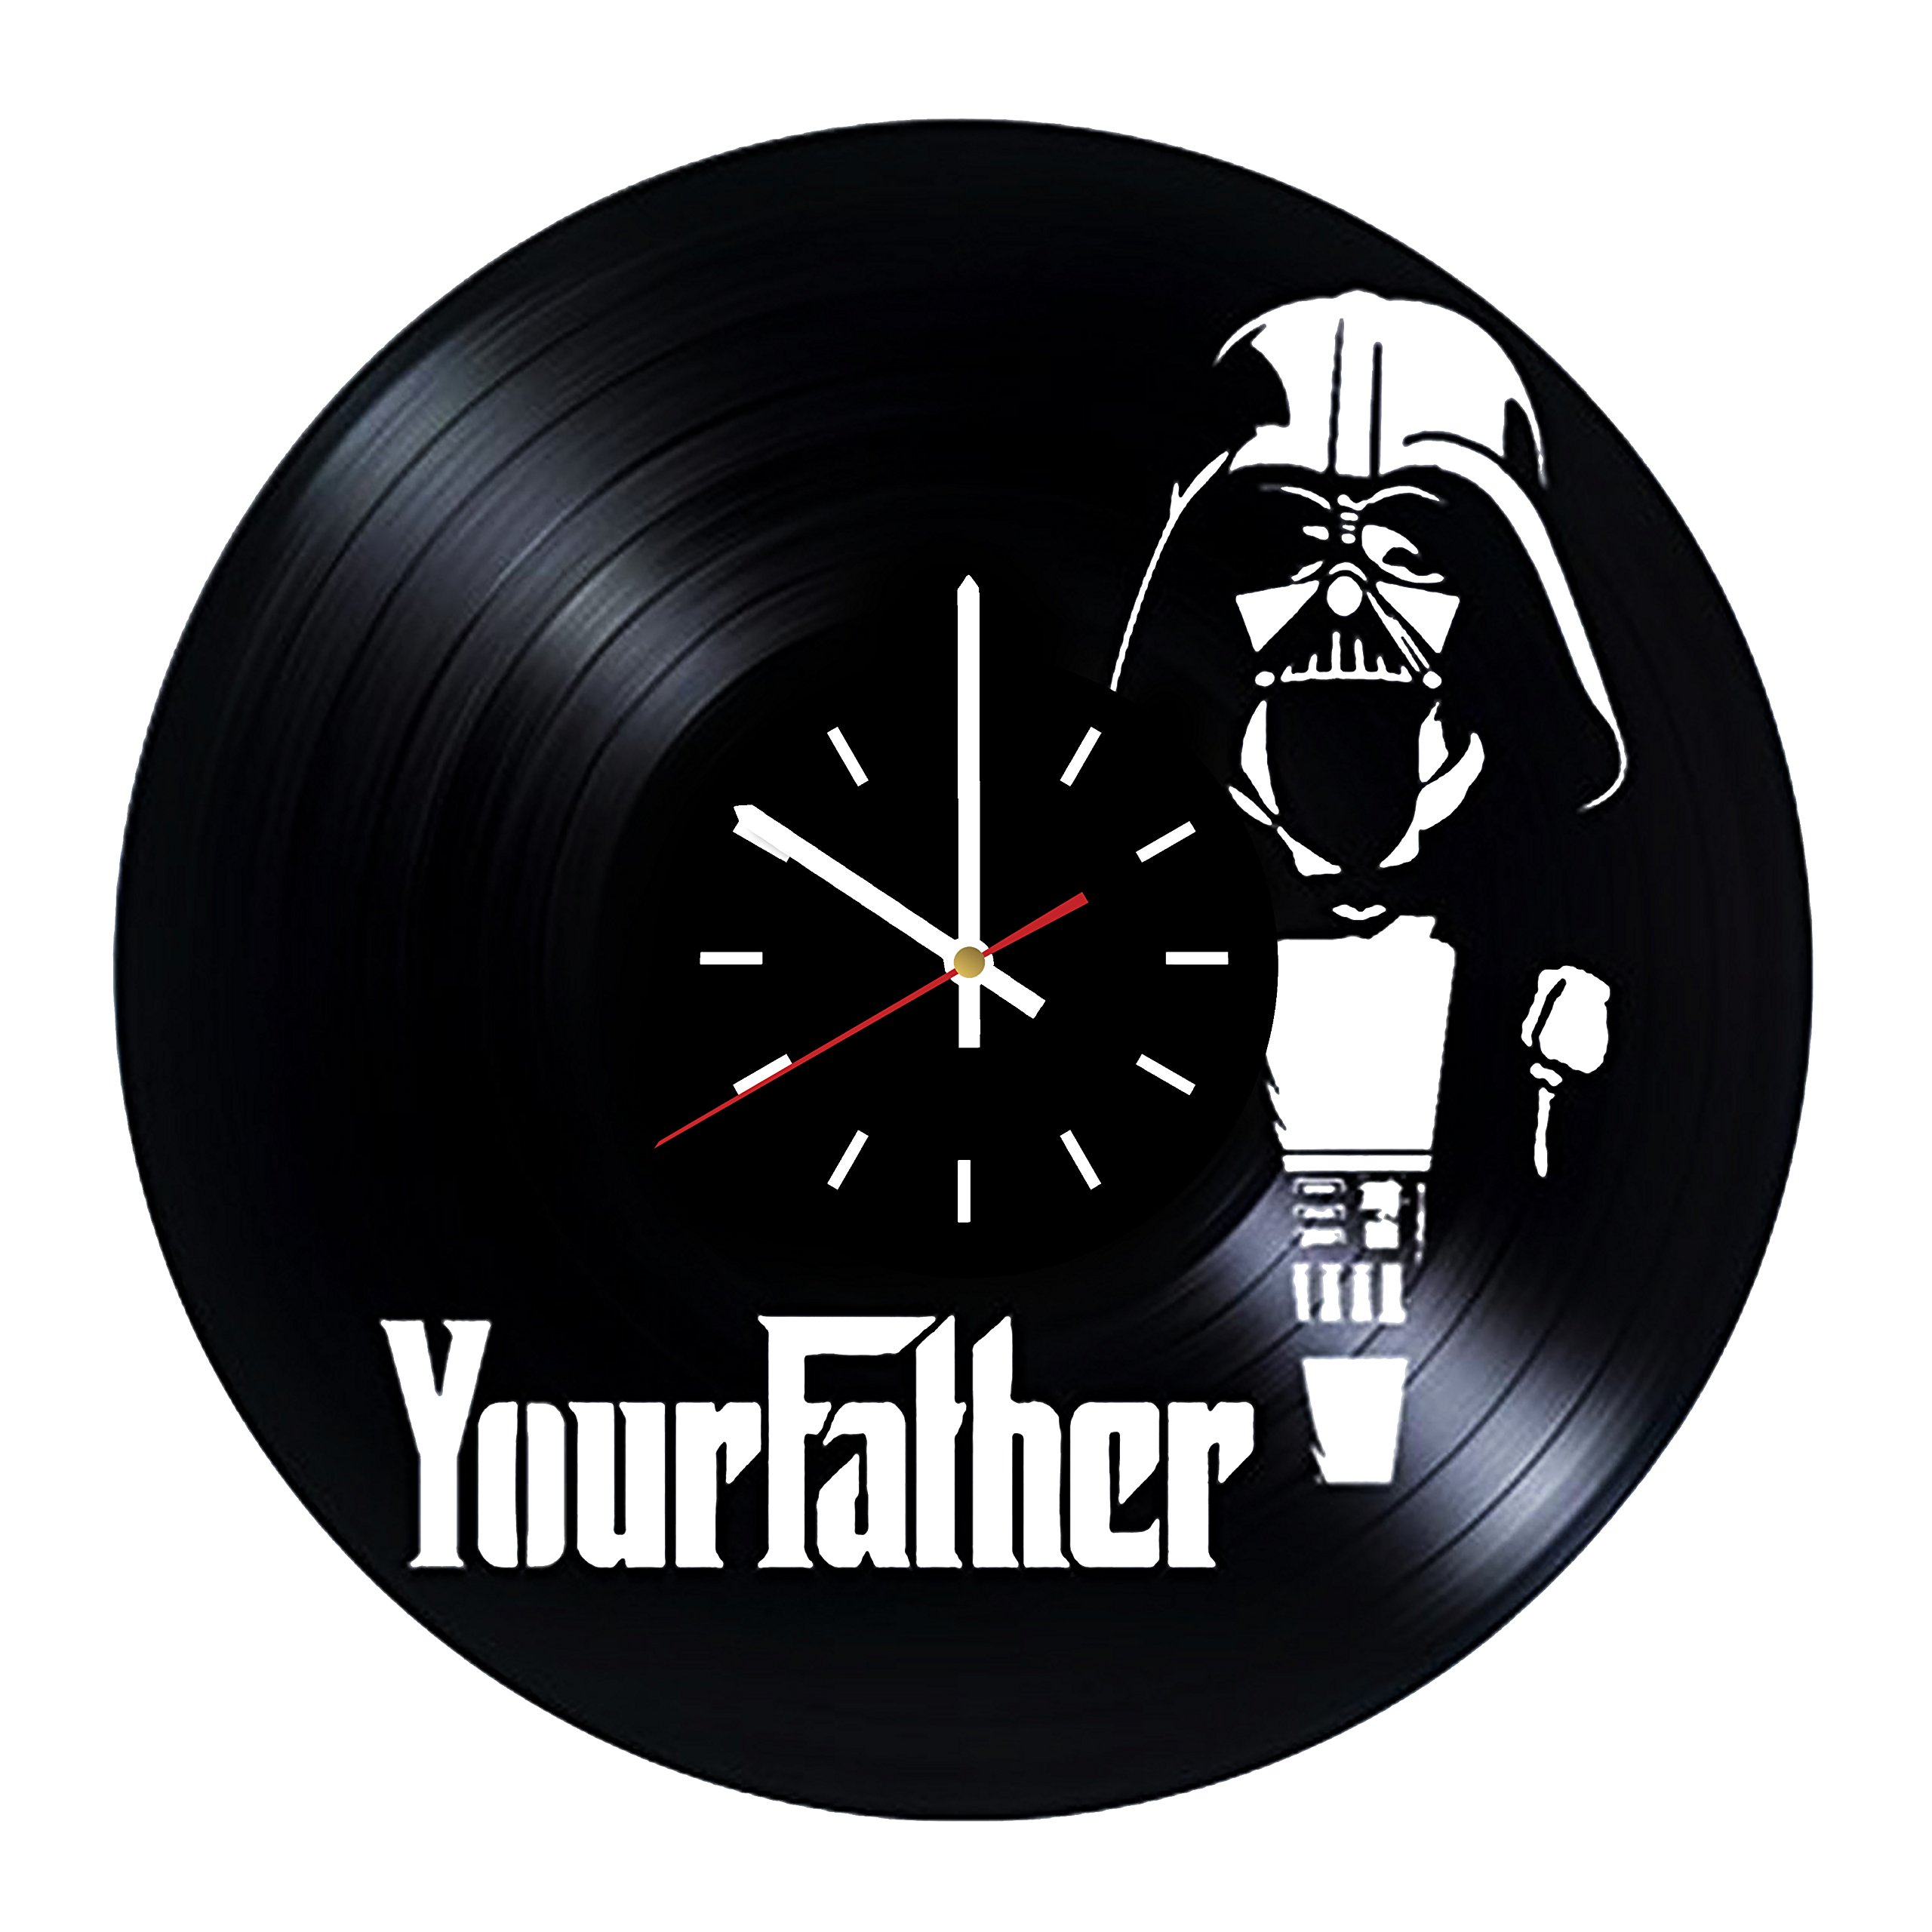 Everyday Arts Darth Vader Your Father Design Vinyl Record Wall Clock - Get Unique Bedroom or Garage Wall Decor - Gift Ideas for Friends, Brother - Darth Vader Unique Modern Art